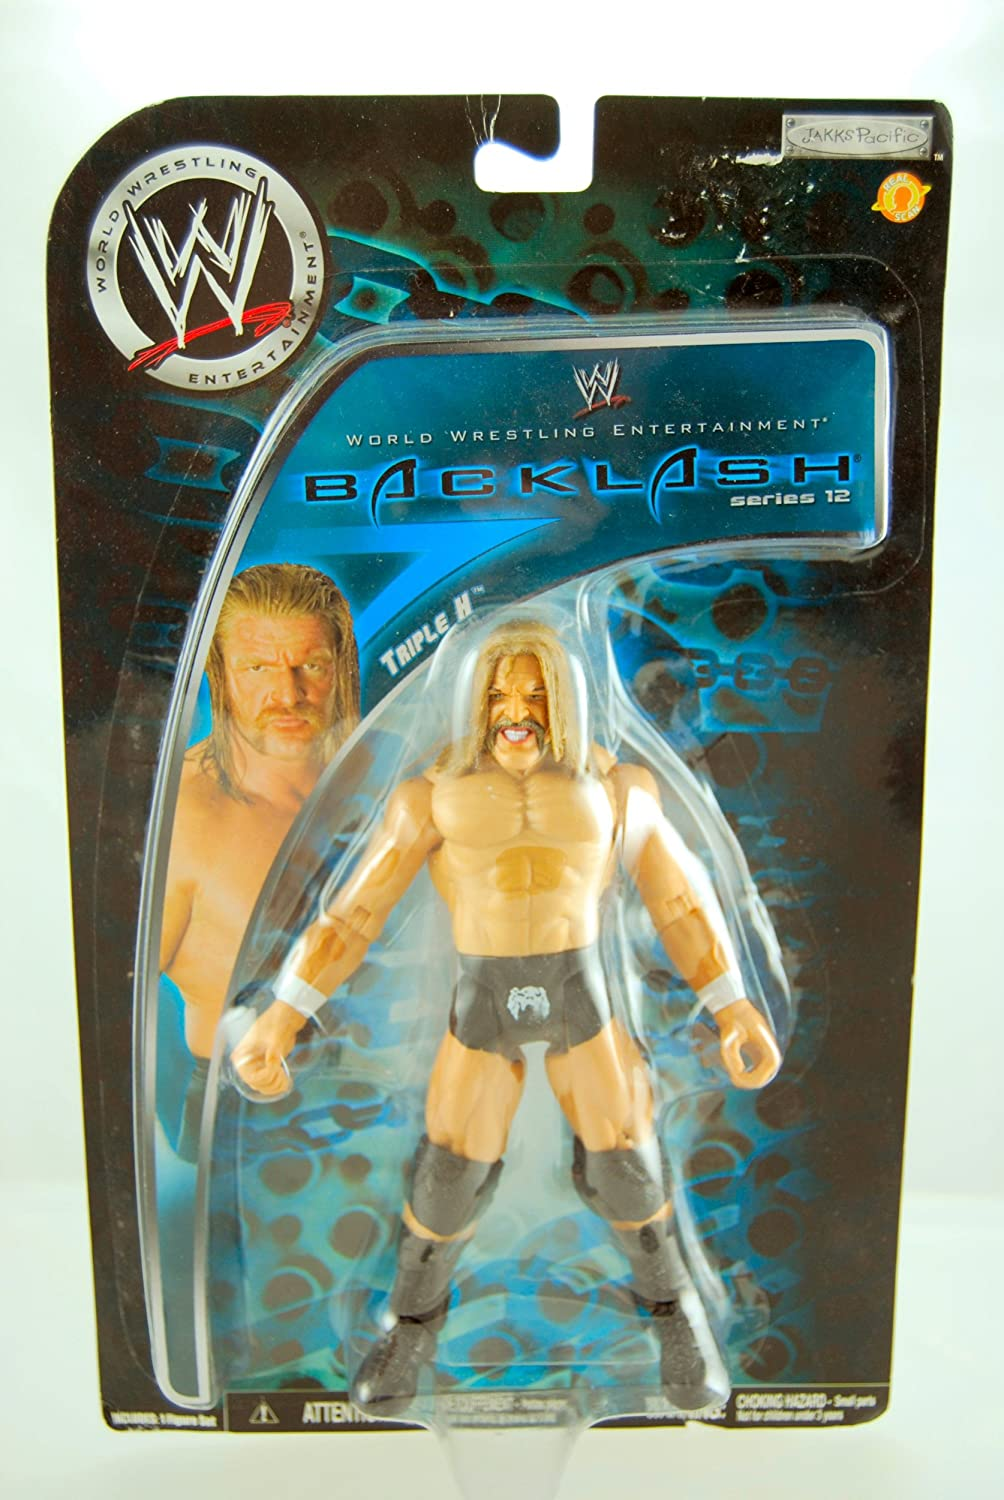 WWE  2008  Backlash Series 12  Triple H  Action Figure  Limited Edition ... by Jakks